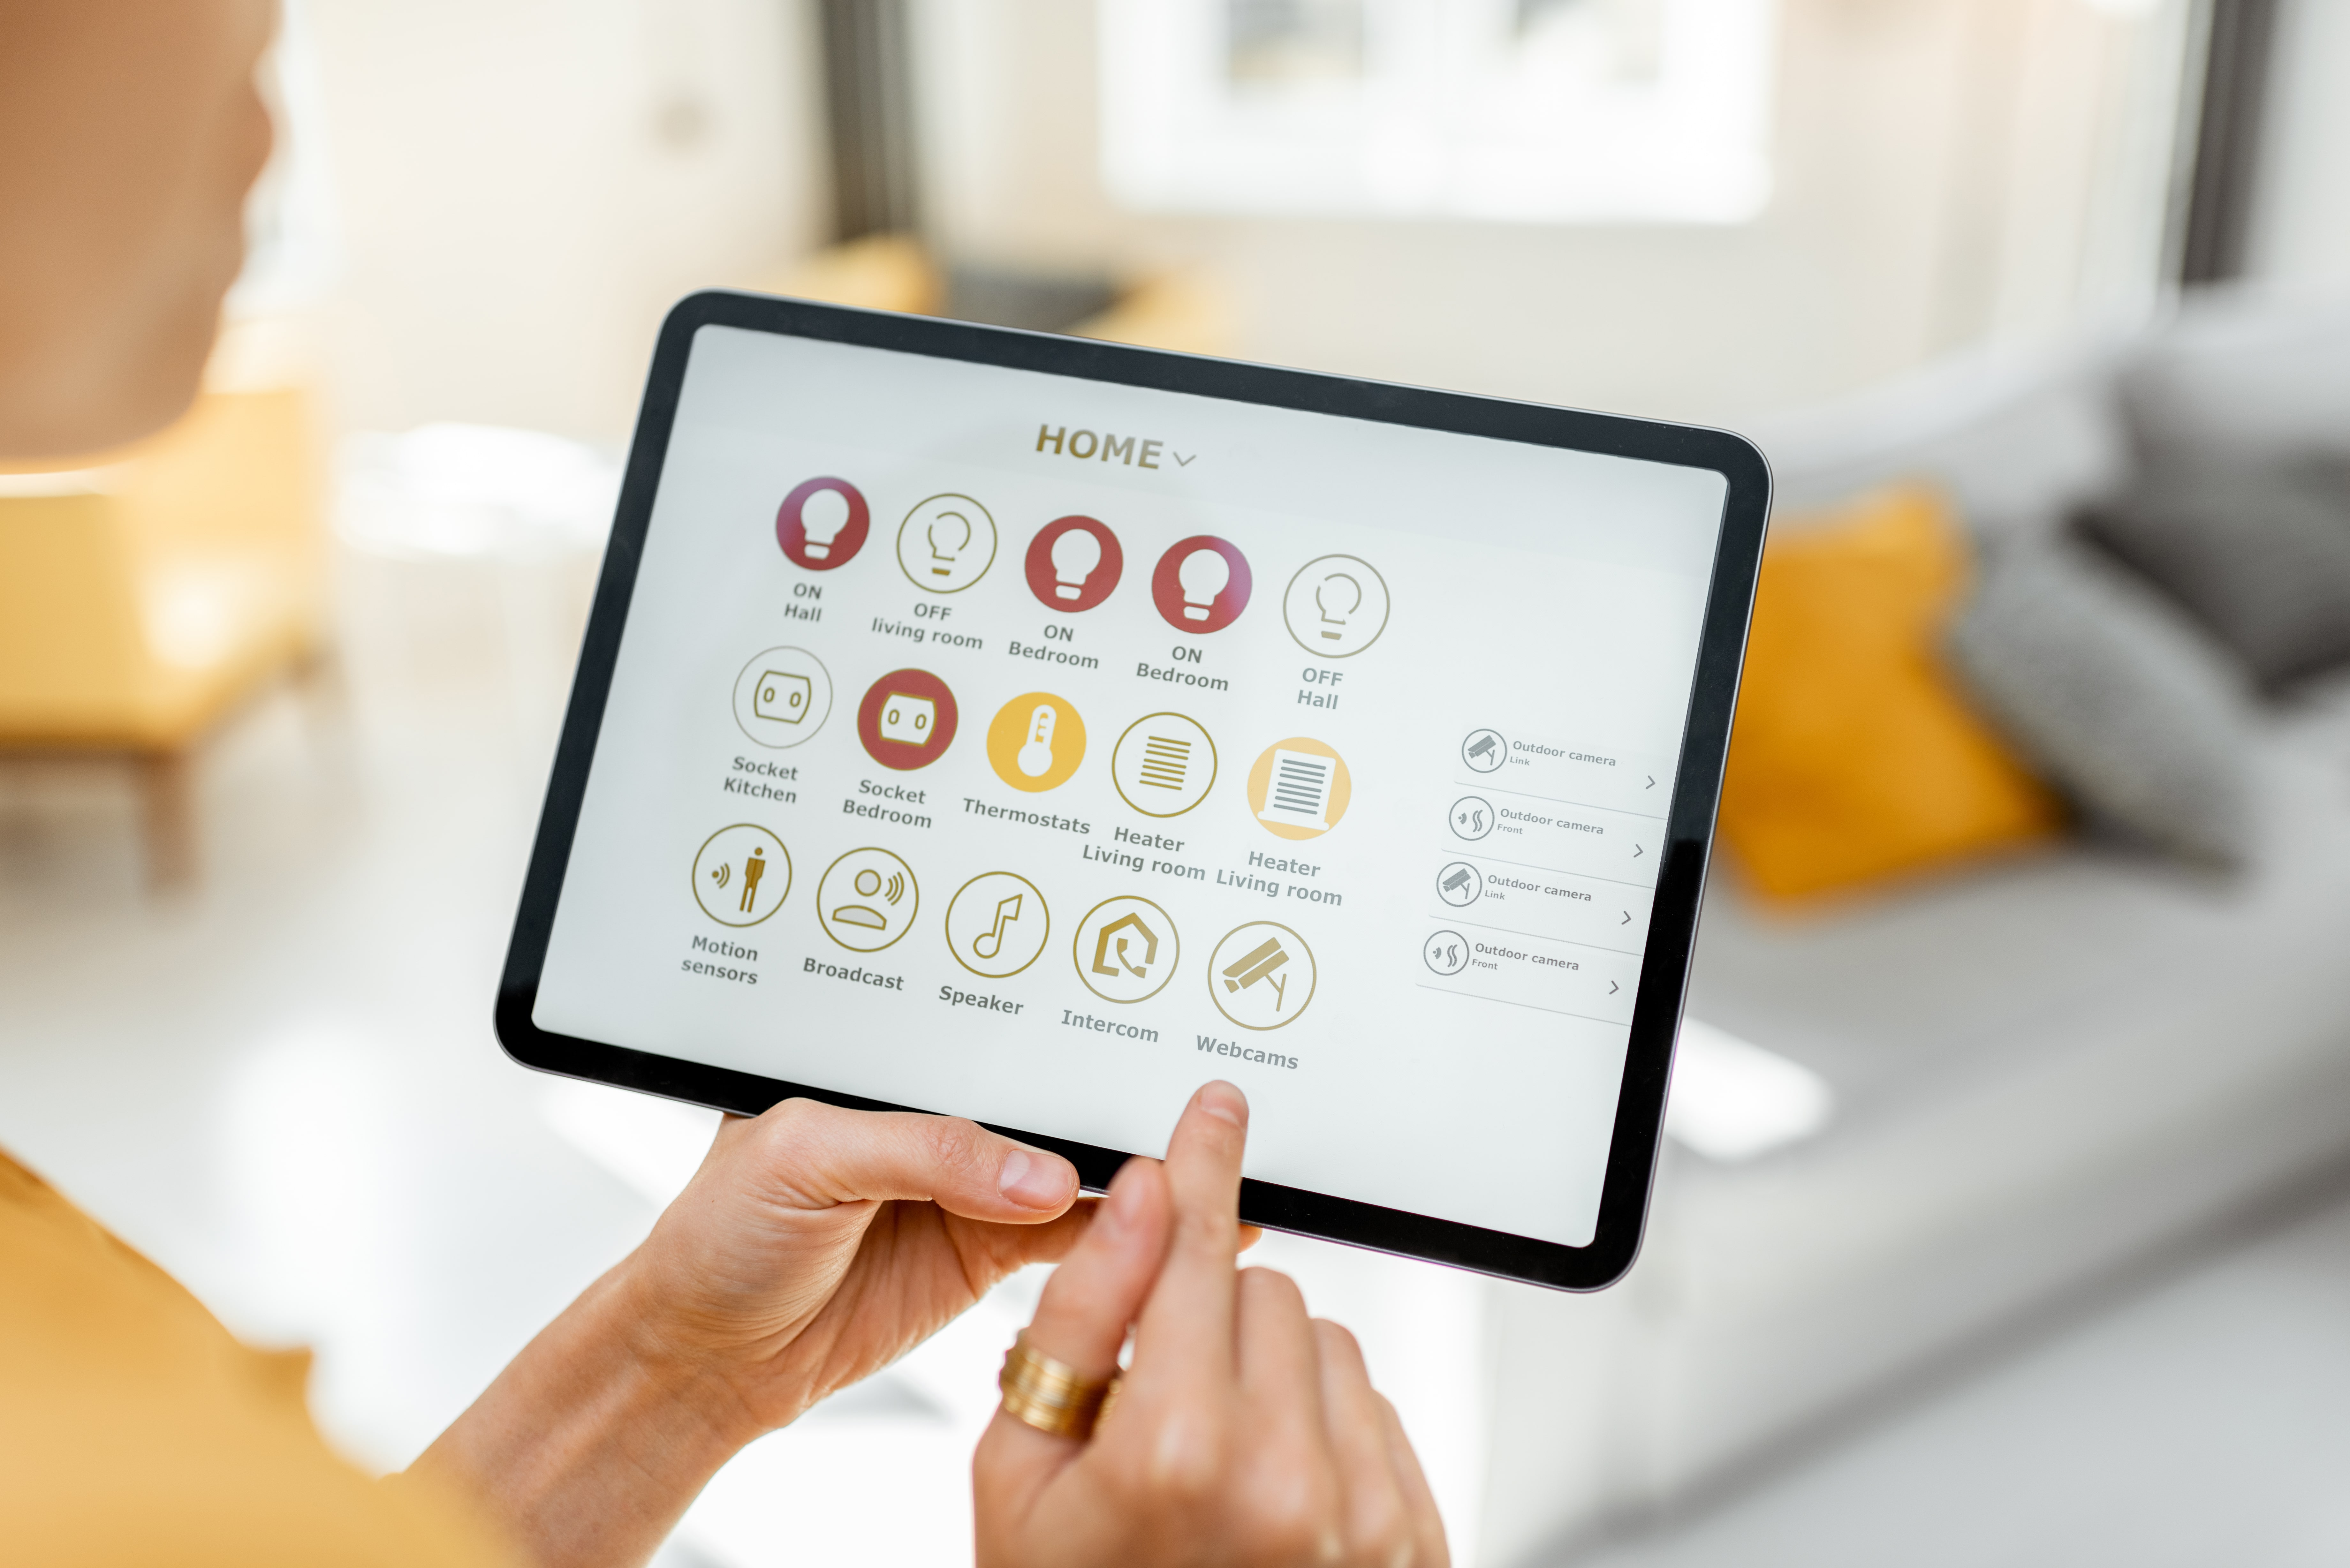 controlling-smart-home-devices-using-a-digital-tab-alignthoughts